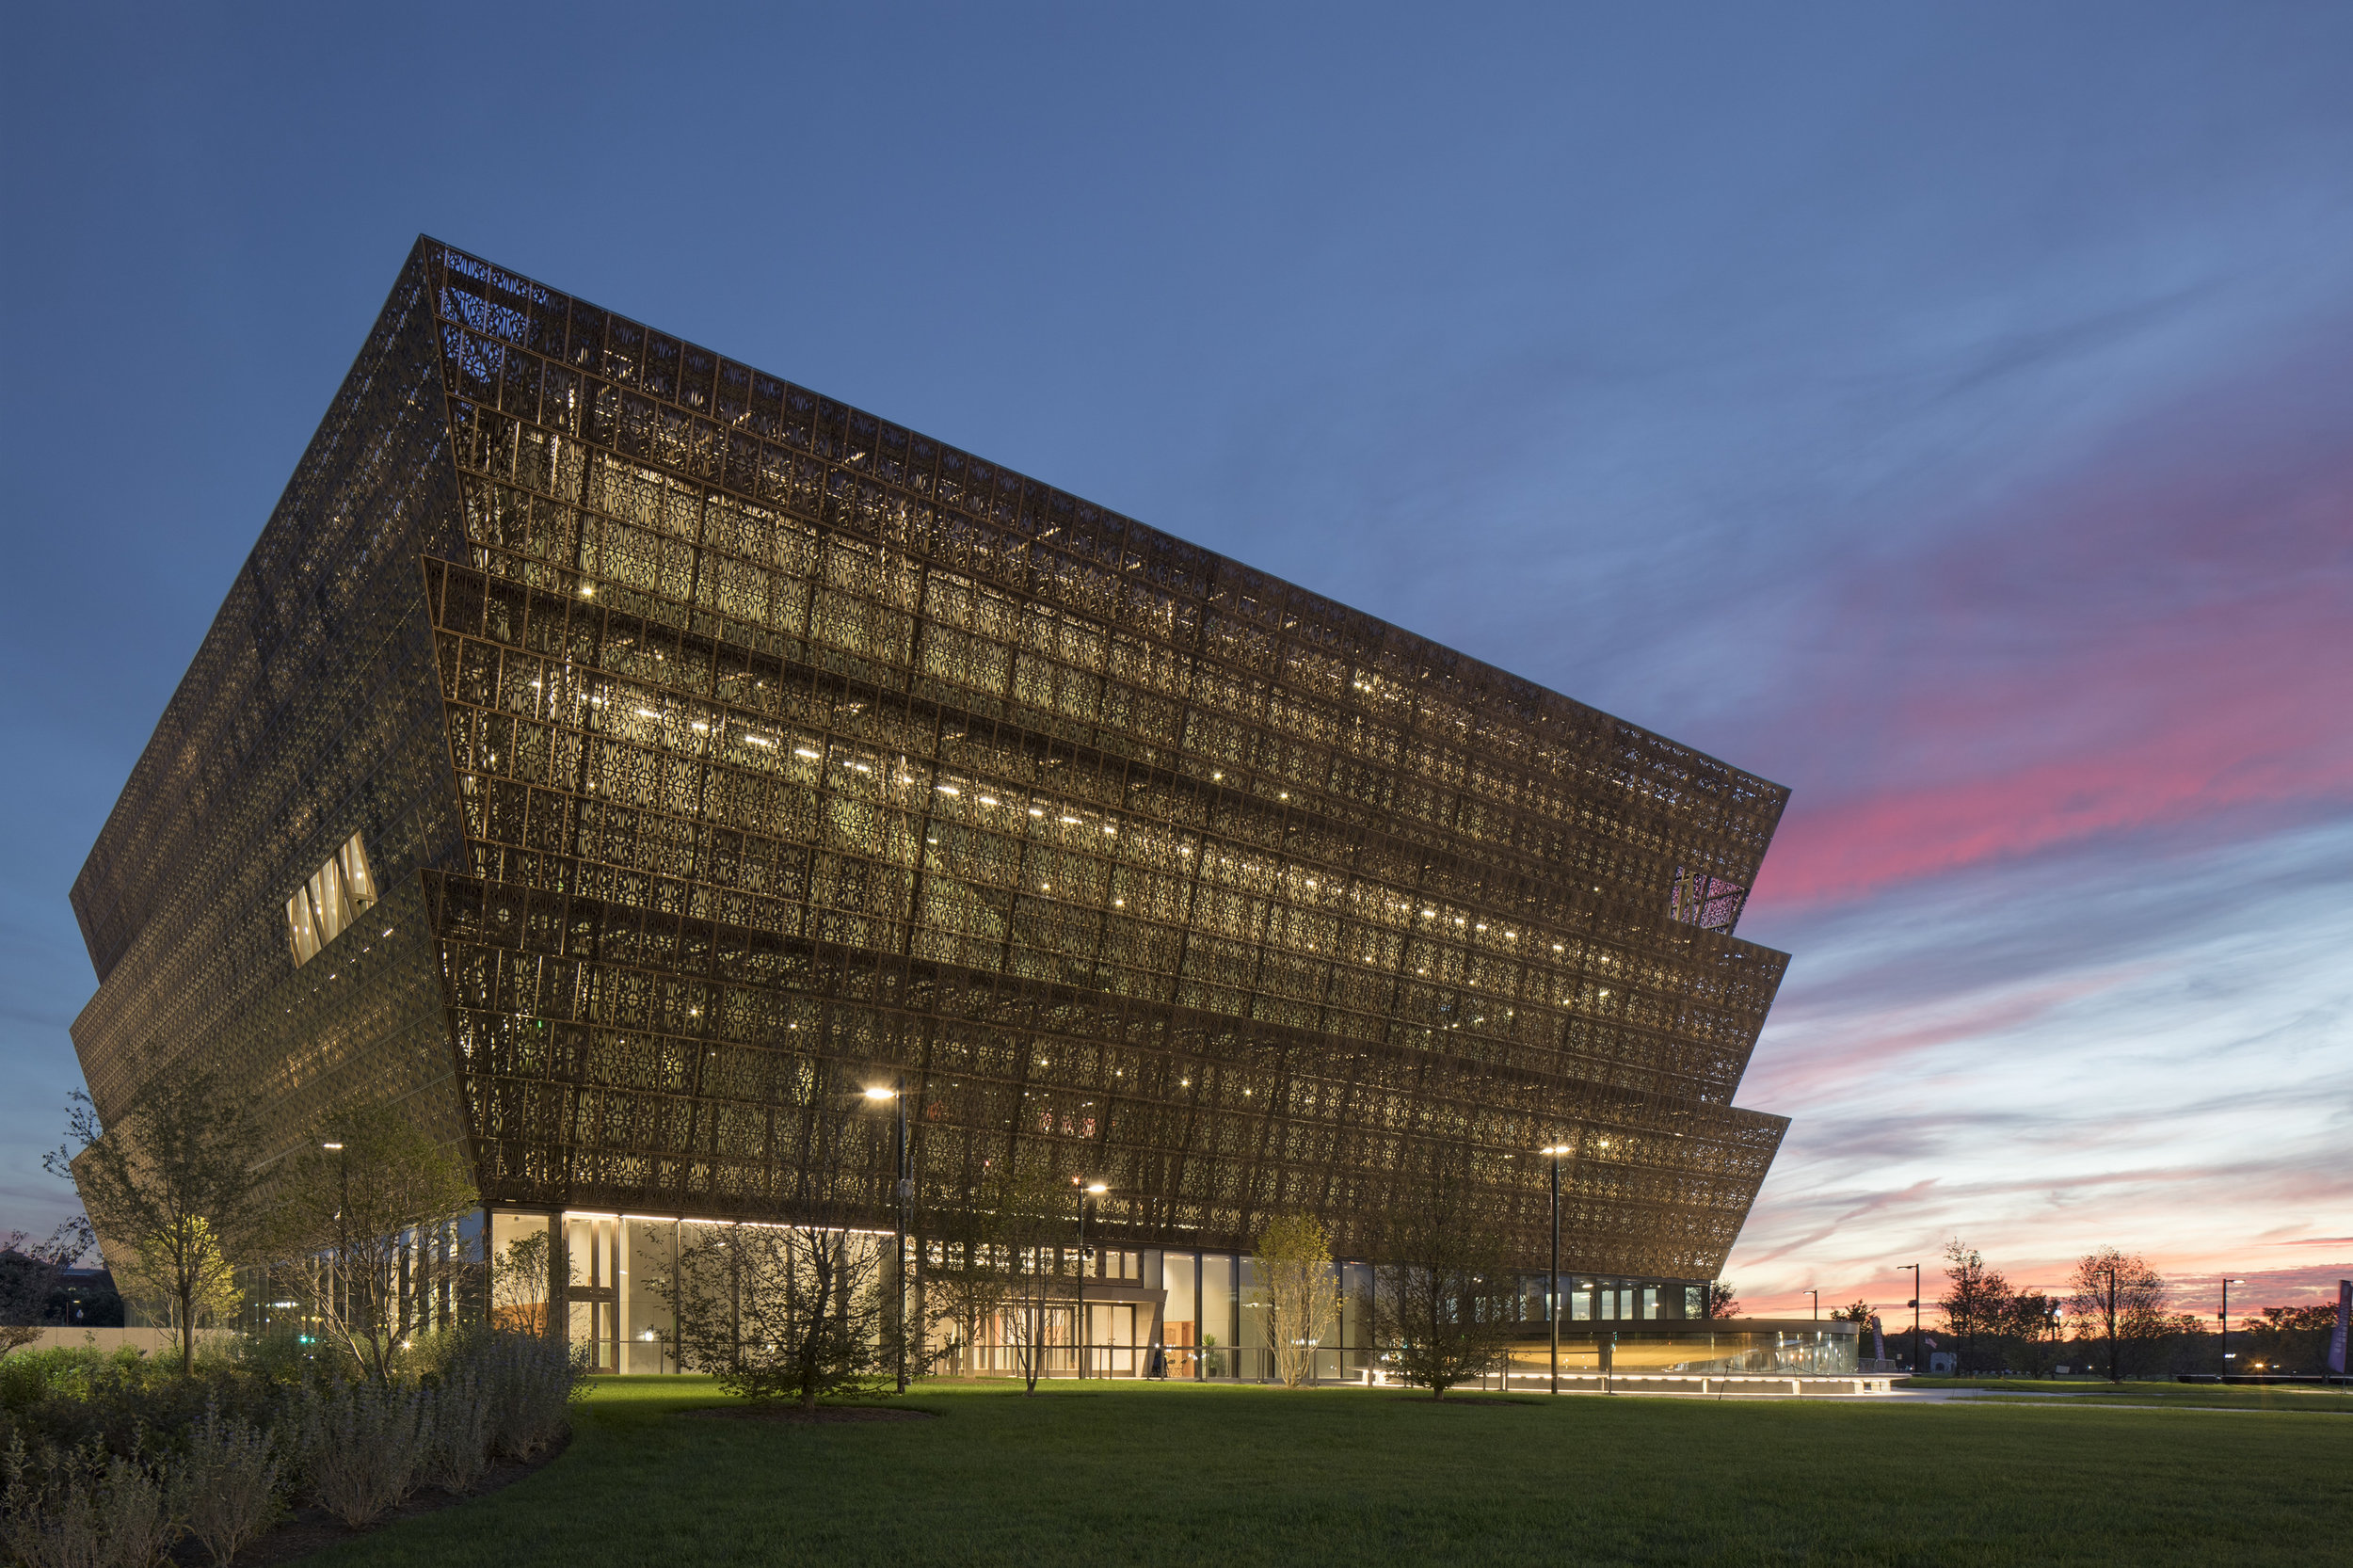 National Museum of African American History and Culture: Building a Legacy of MBE/WBE Capacity While Building a National Treasure in Washington, DC   Clark Construction, along with its joint venture partners, is proud to have built the new National Museum of African American History and Culture (NMAAHC), which was completed in September 2016. In addition to delivering a national museum devoted exclusively to the documentation of African American life, history, and culture, the NMAAC project was a success in terms of small business involvement.   M/WBE Involvement:   - Small Disadvantaged Business - Goal: 22.0% |  Actual: 46.0%  - Women-Owned Small Business - Goal: 10.0% |  Actual: 13.9%